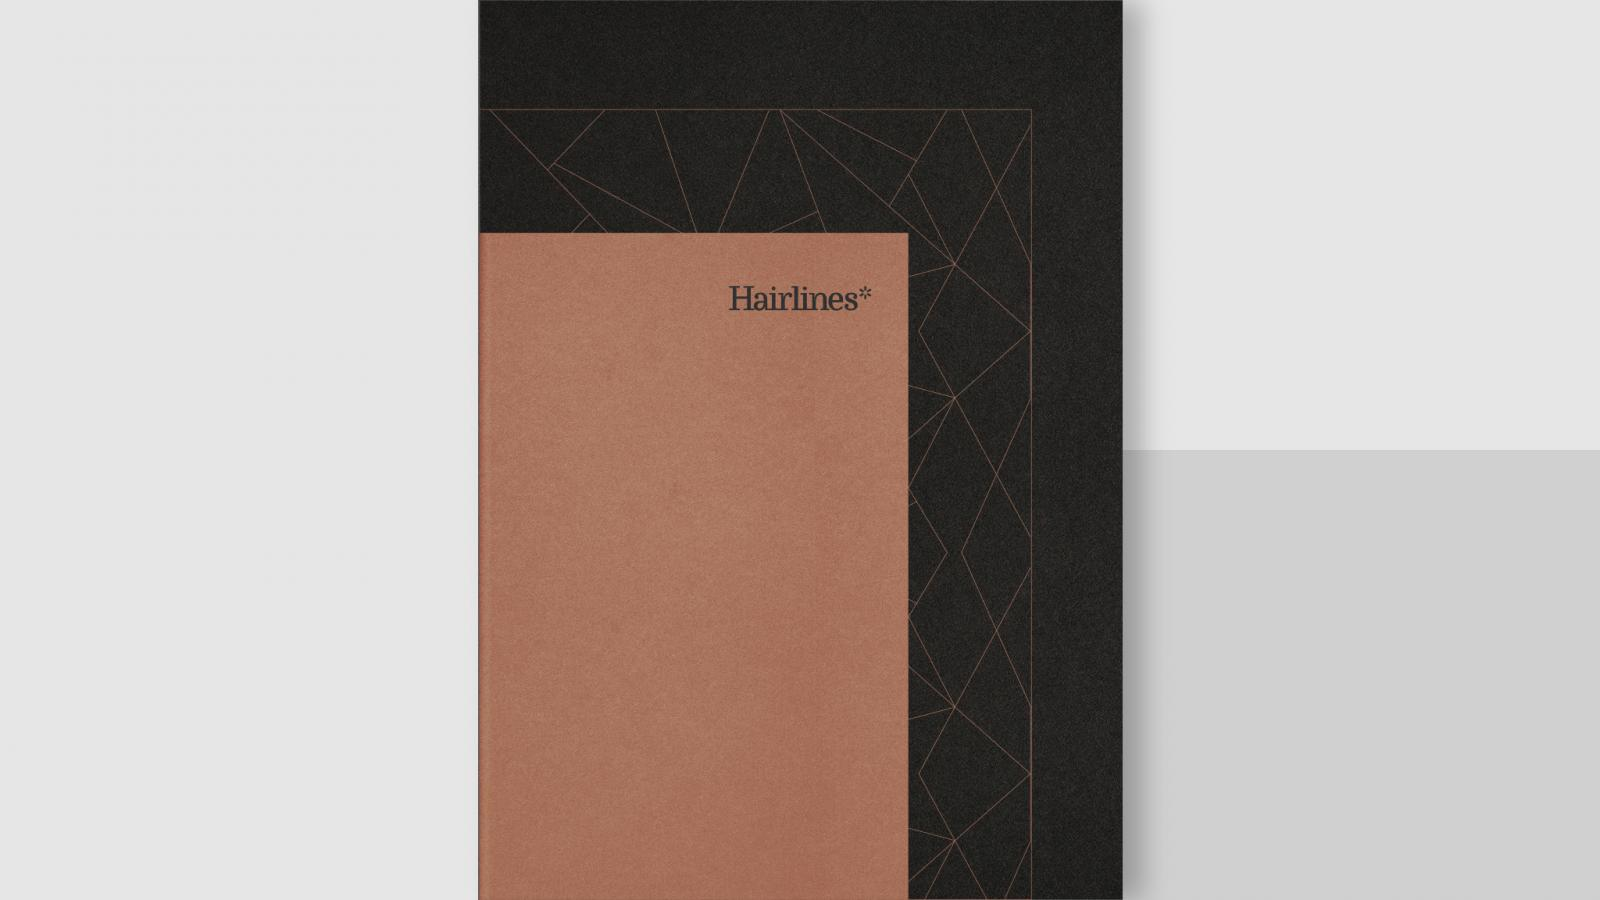 Elegant Brand Identity for Hairlines by BULLSEYE